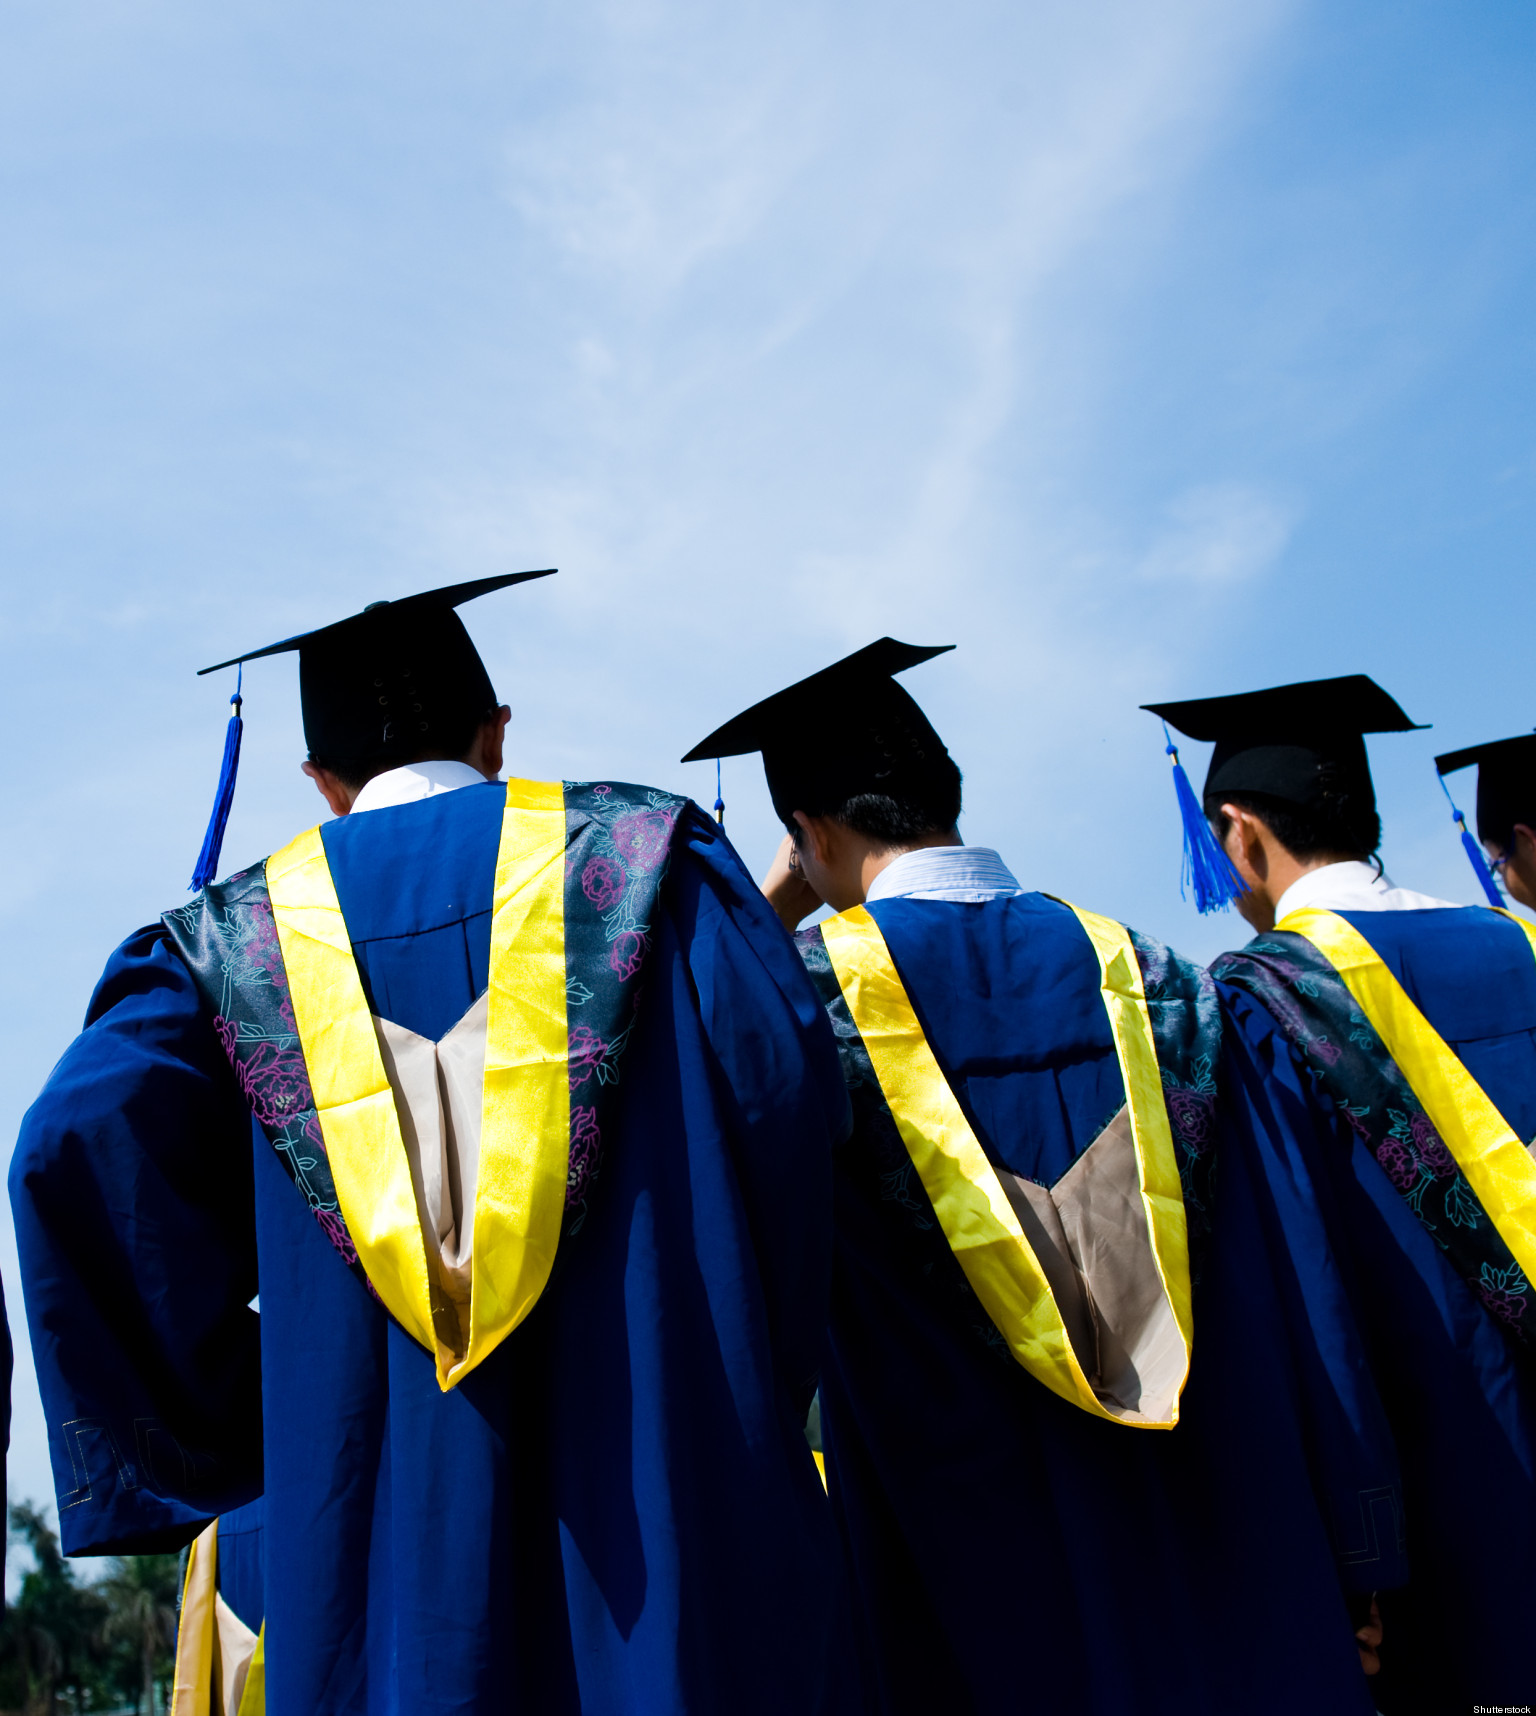 college graduation fees instated at california universities the college graduation fees instated at california universities the huffington post